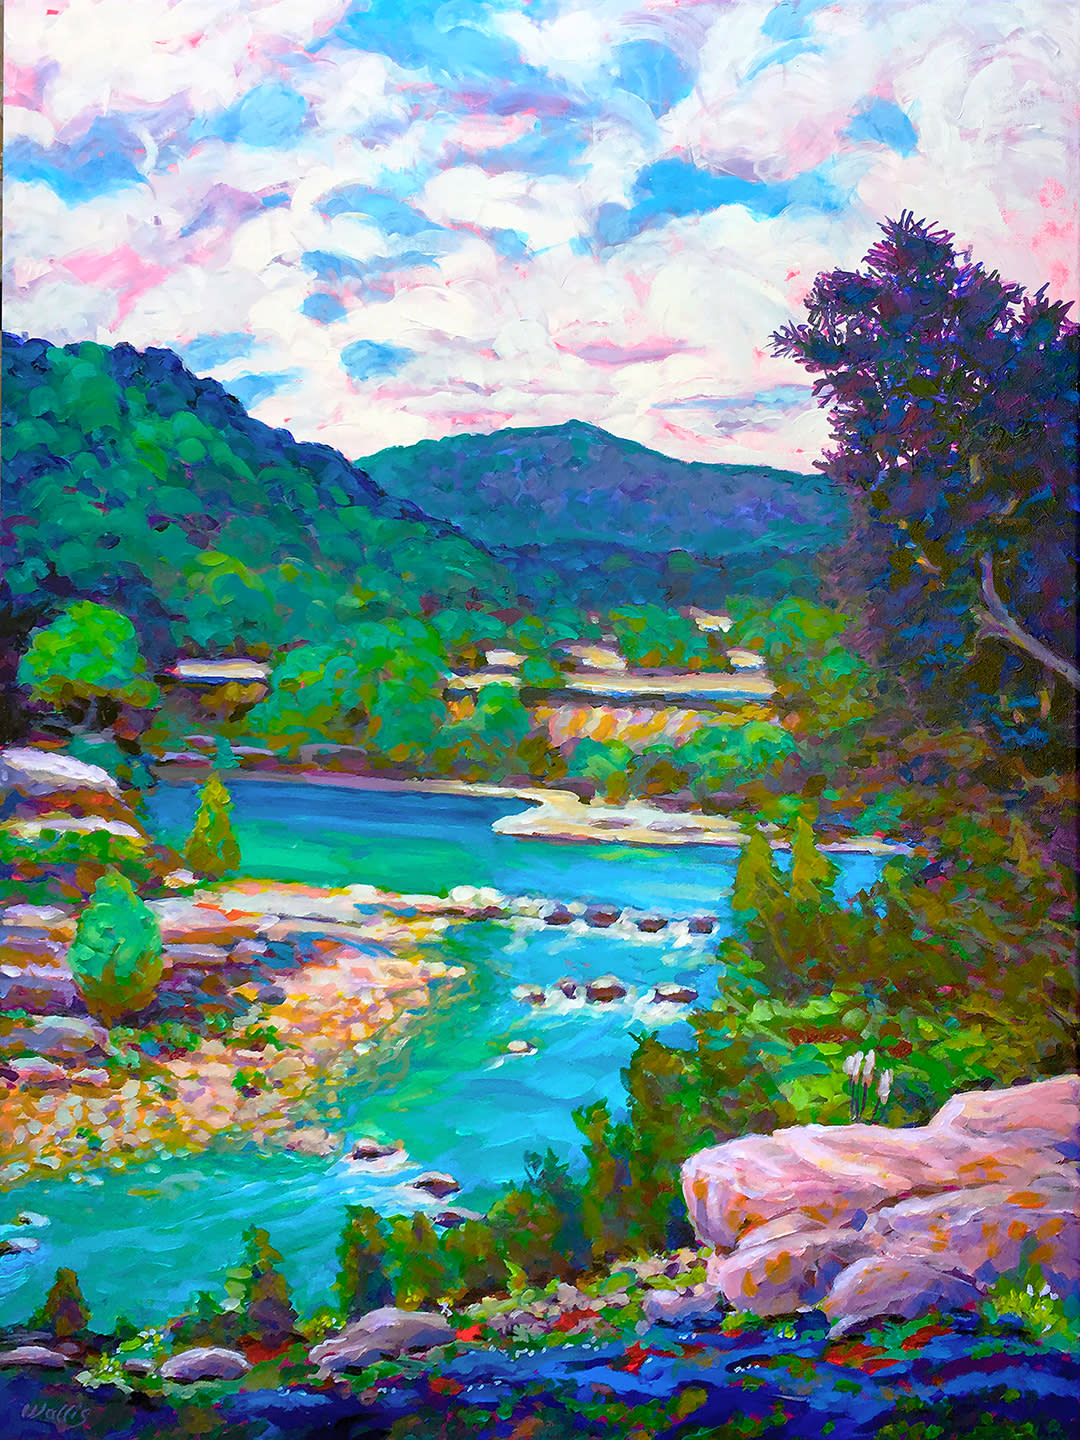 Hill country river scene vgt mgrbz8